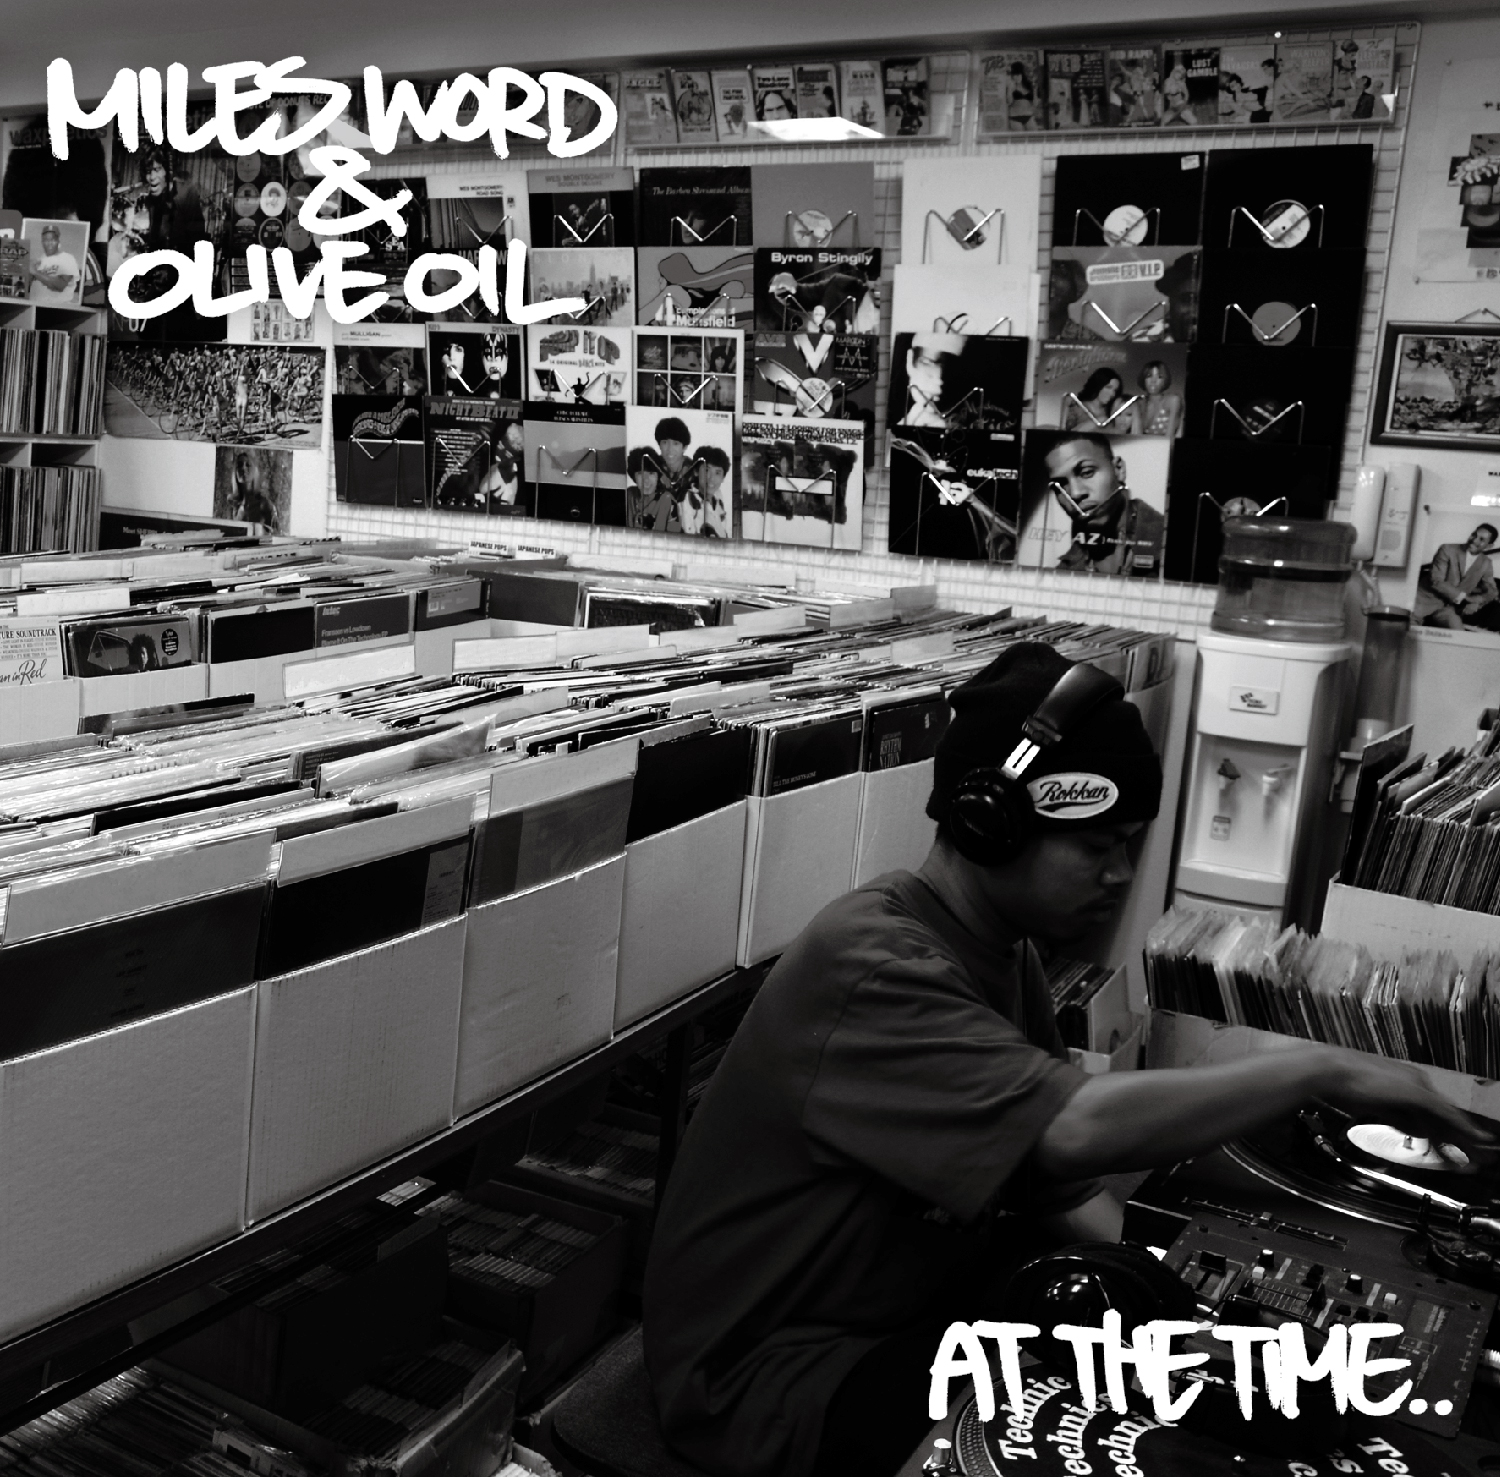 Miles Word × Olive Oil / AT THE TIME